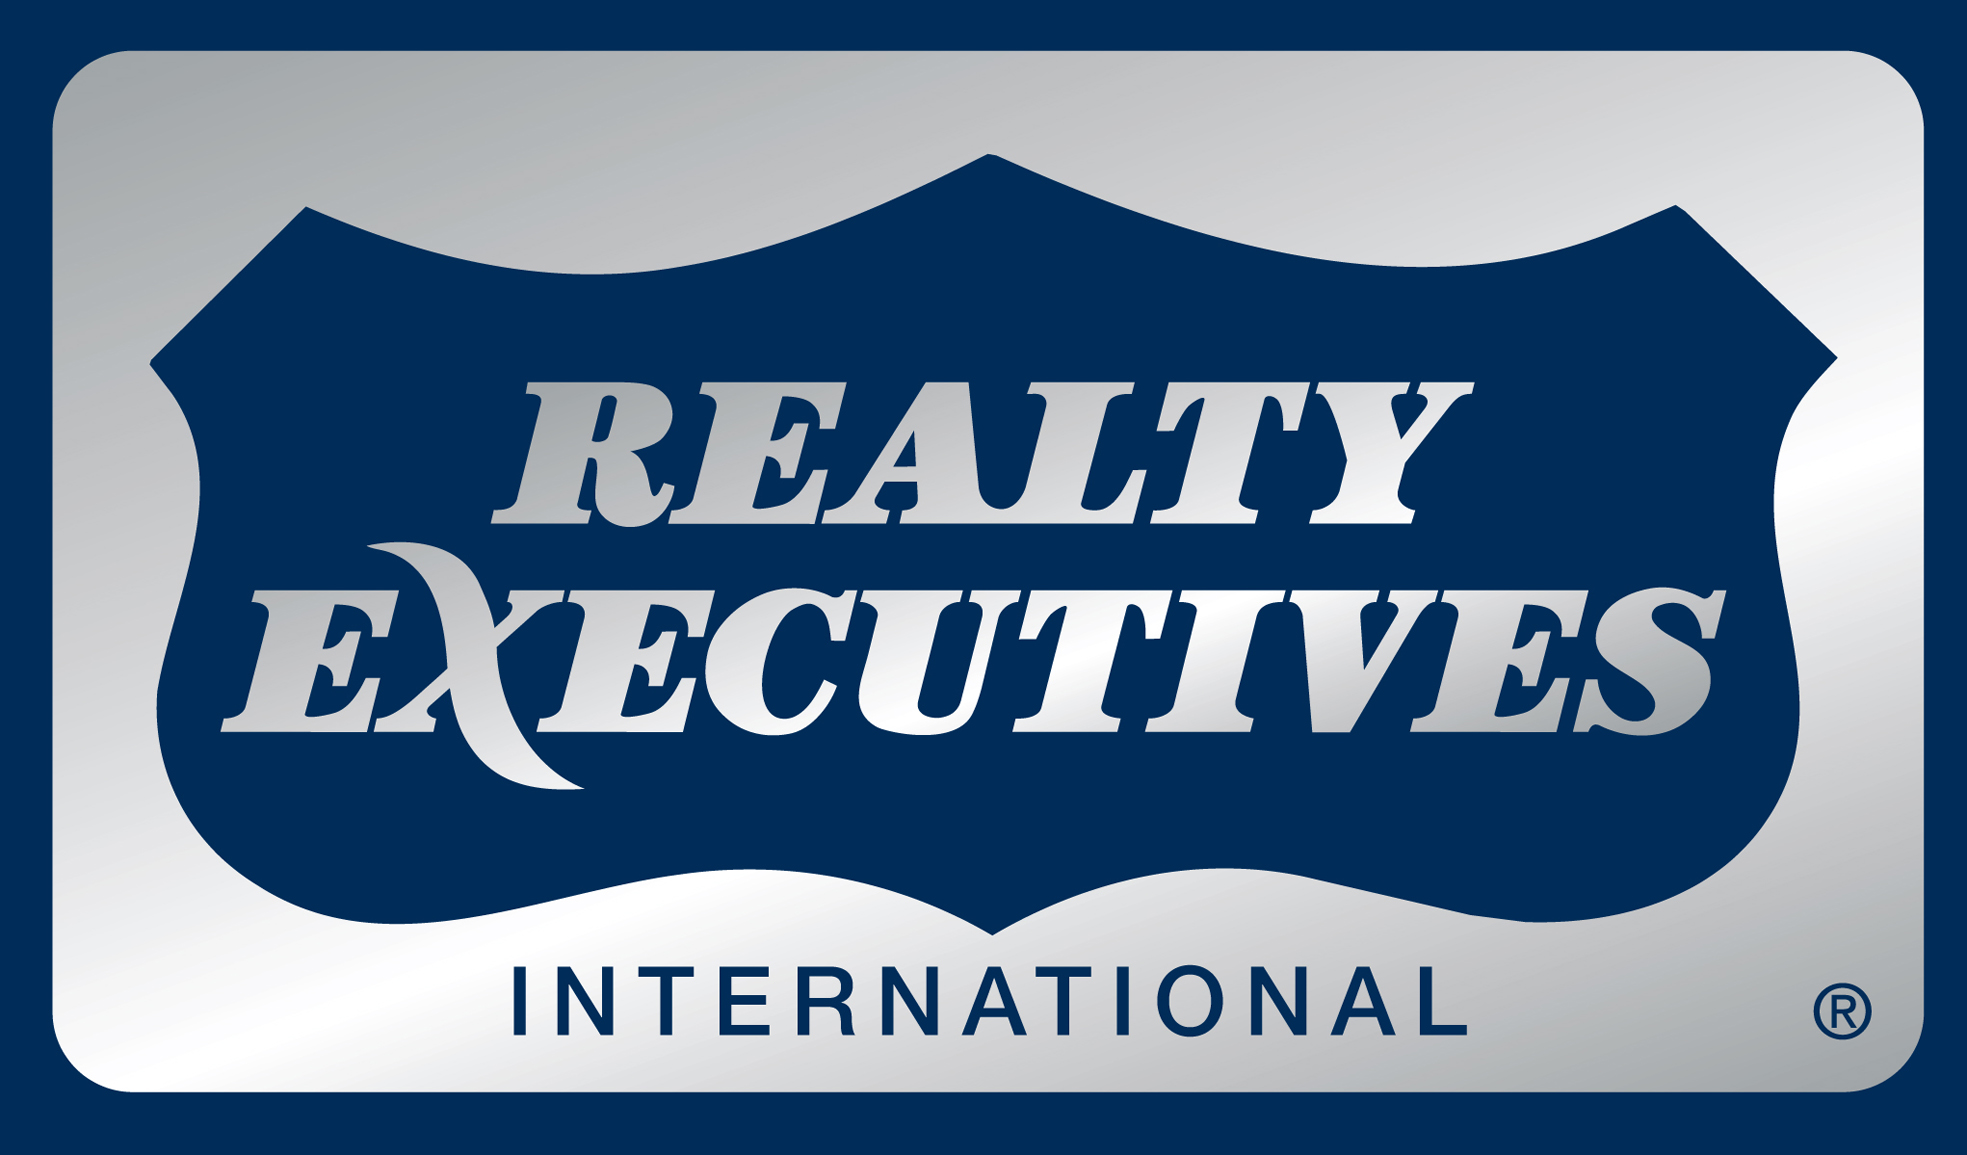 Realty Executives New Image